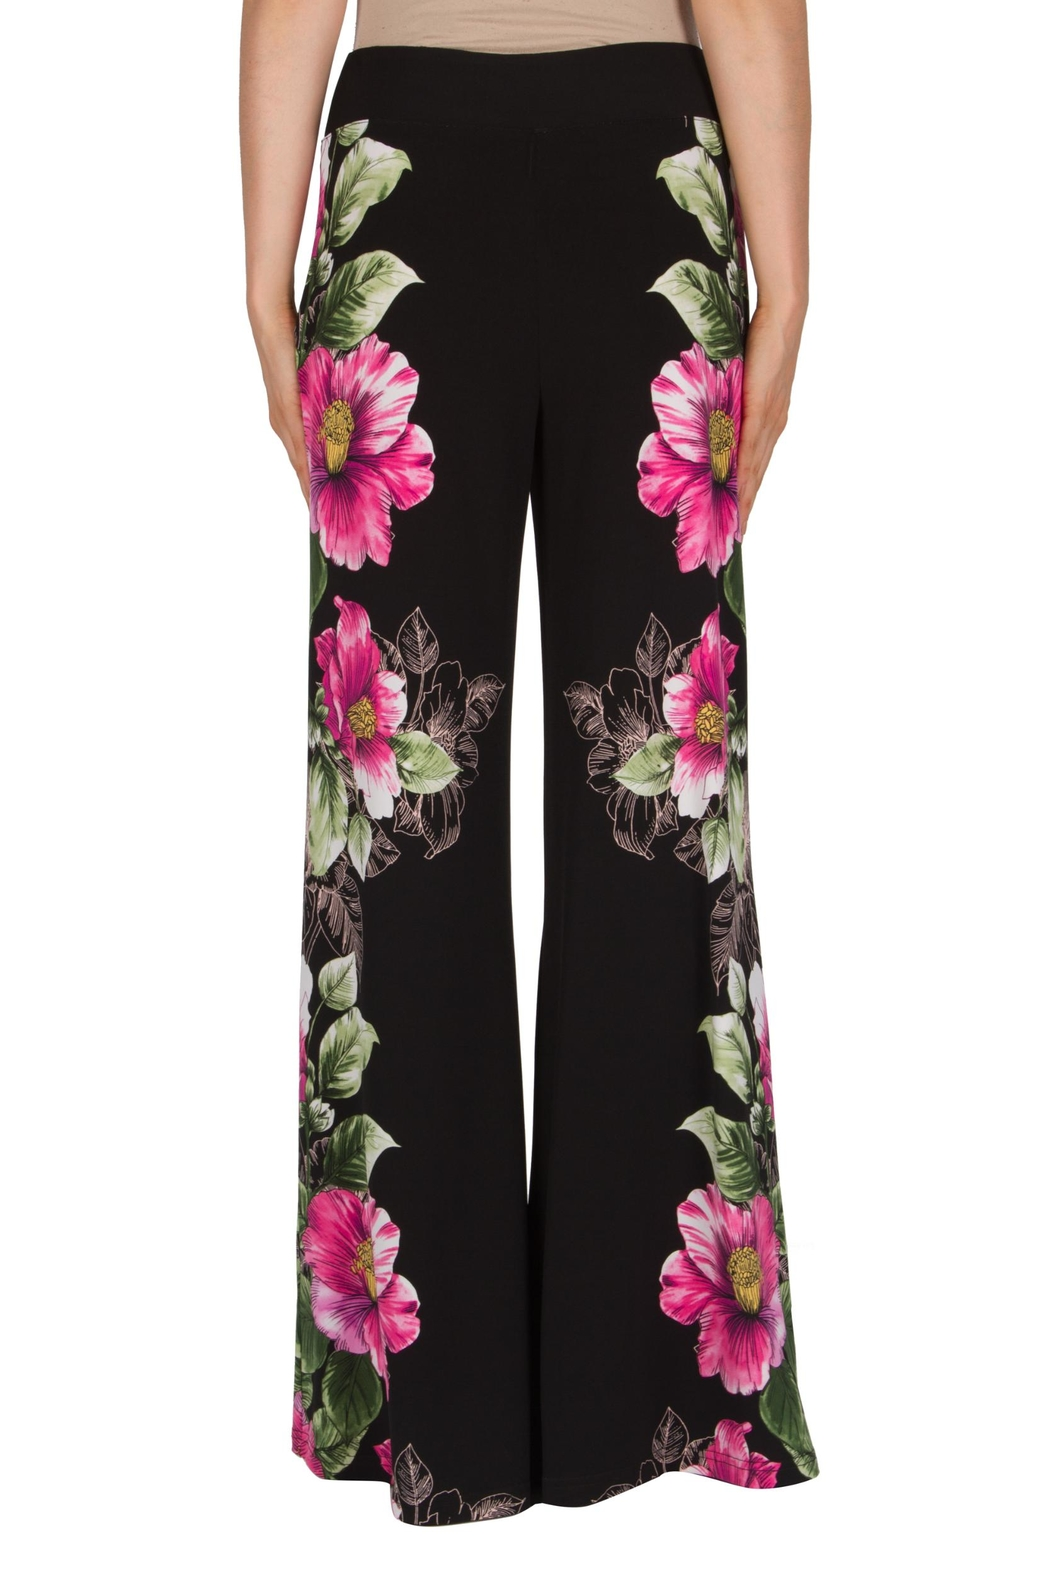 Joseph Ribkoff Floral Motif Pant - Side Cropped Image